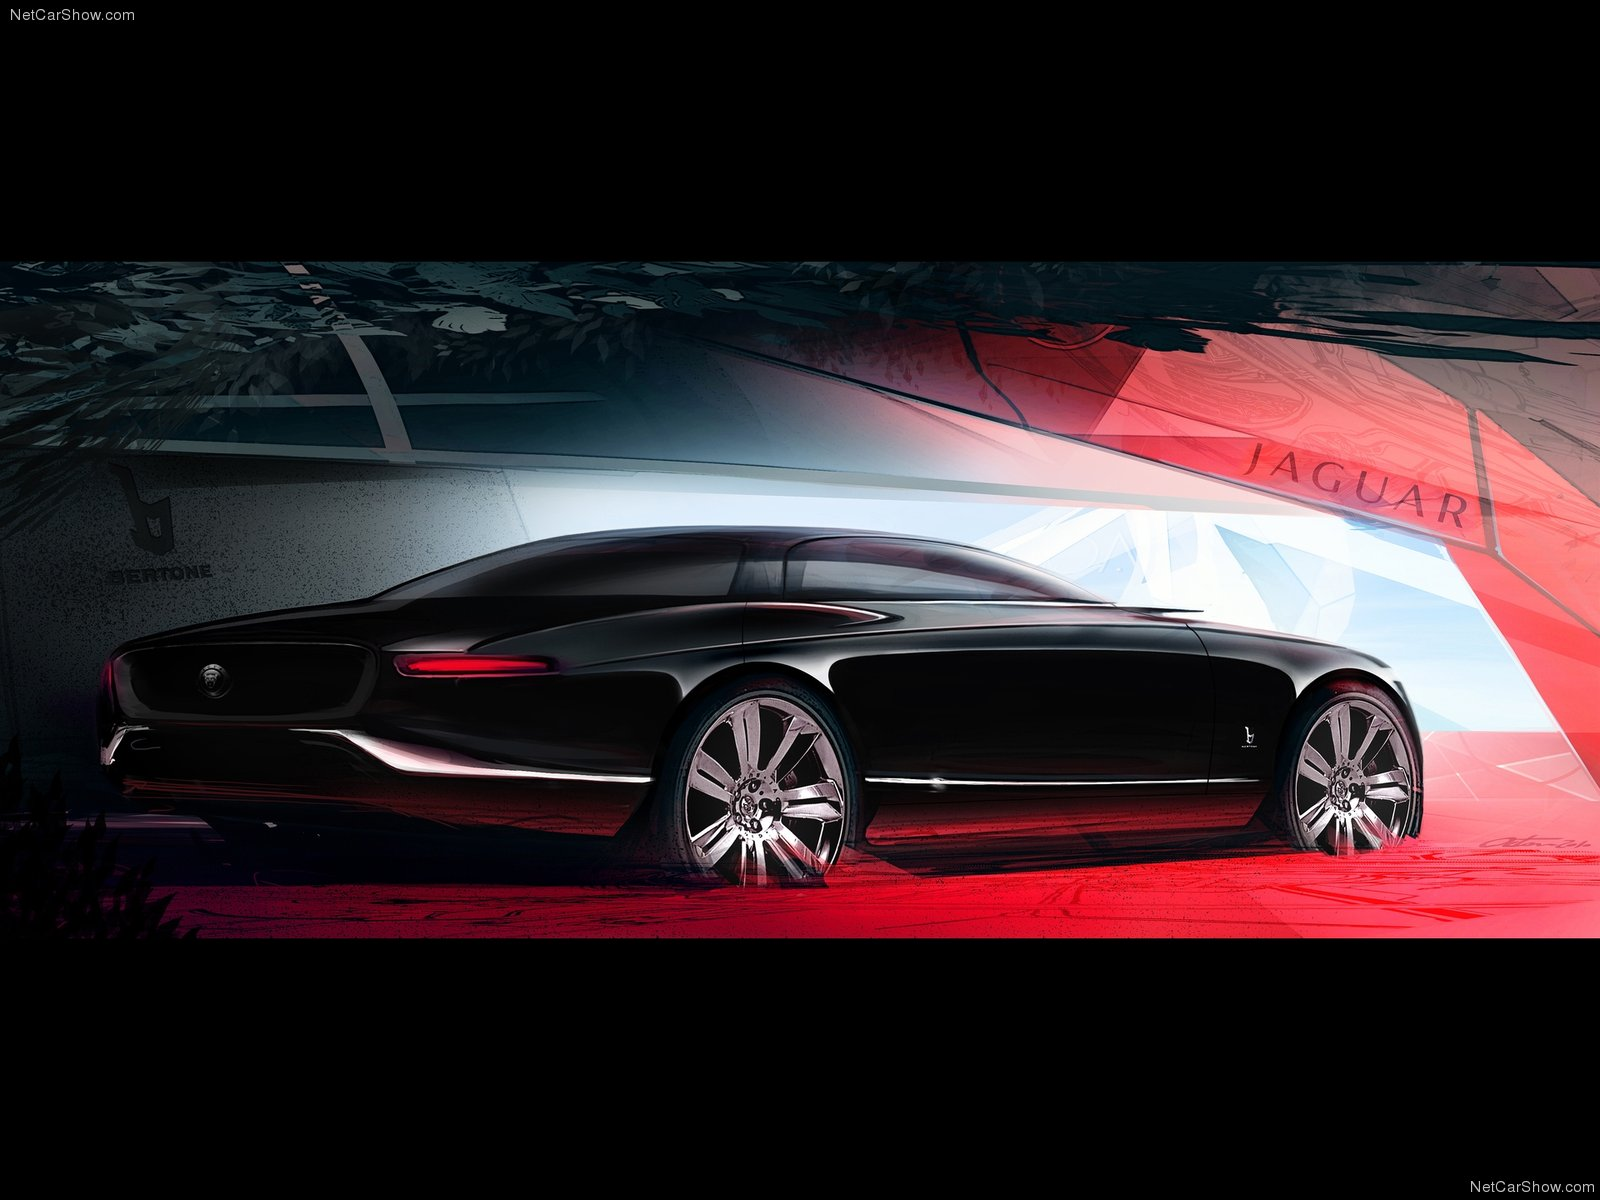 Bertone Jaguar B99 Concept photo 79604